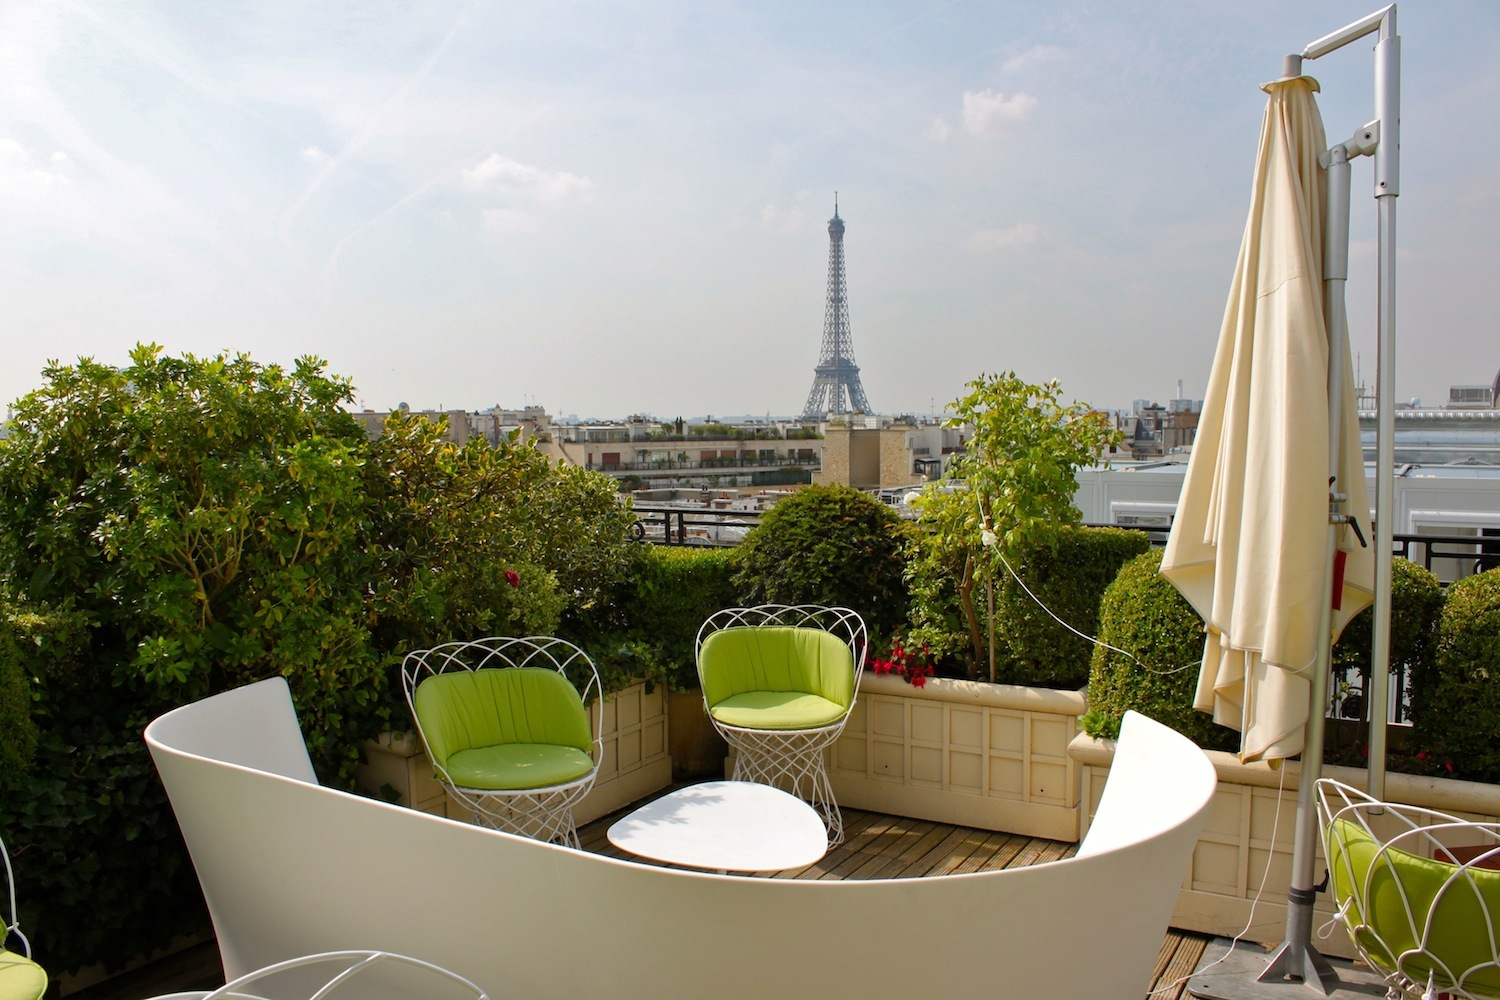 Toit Terrasse Hotel Raphael The Best Rooftop Bars In Paris | Bars & Restaurants | Time